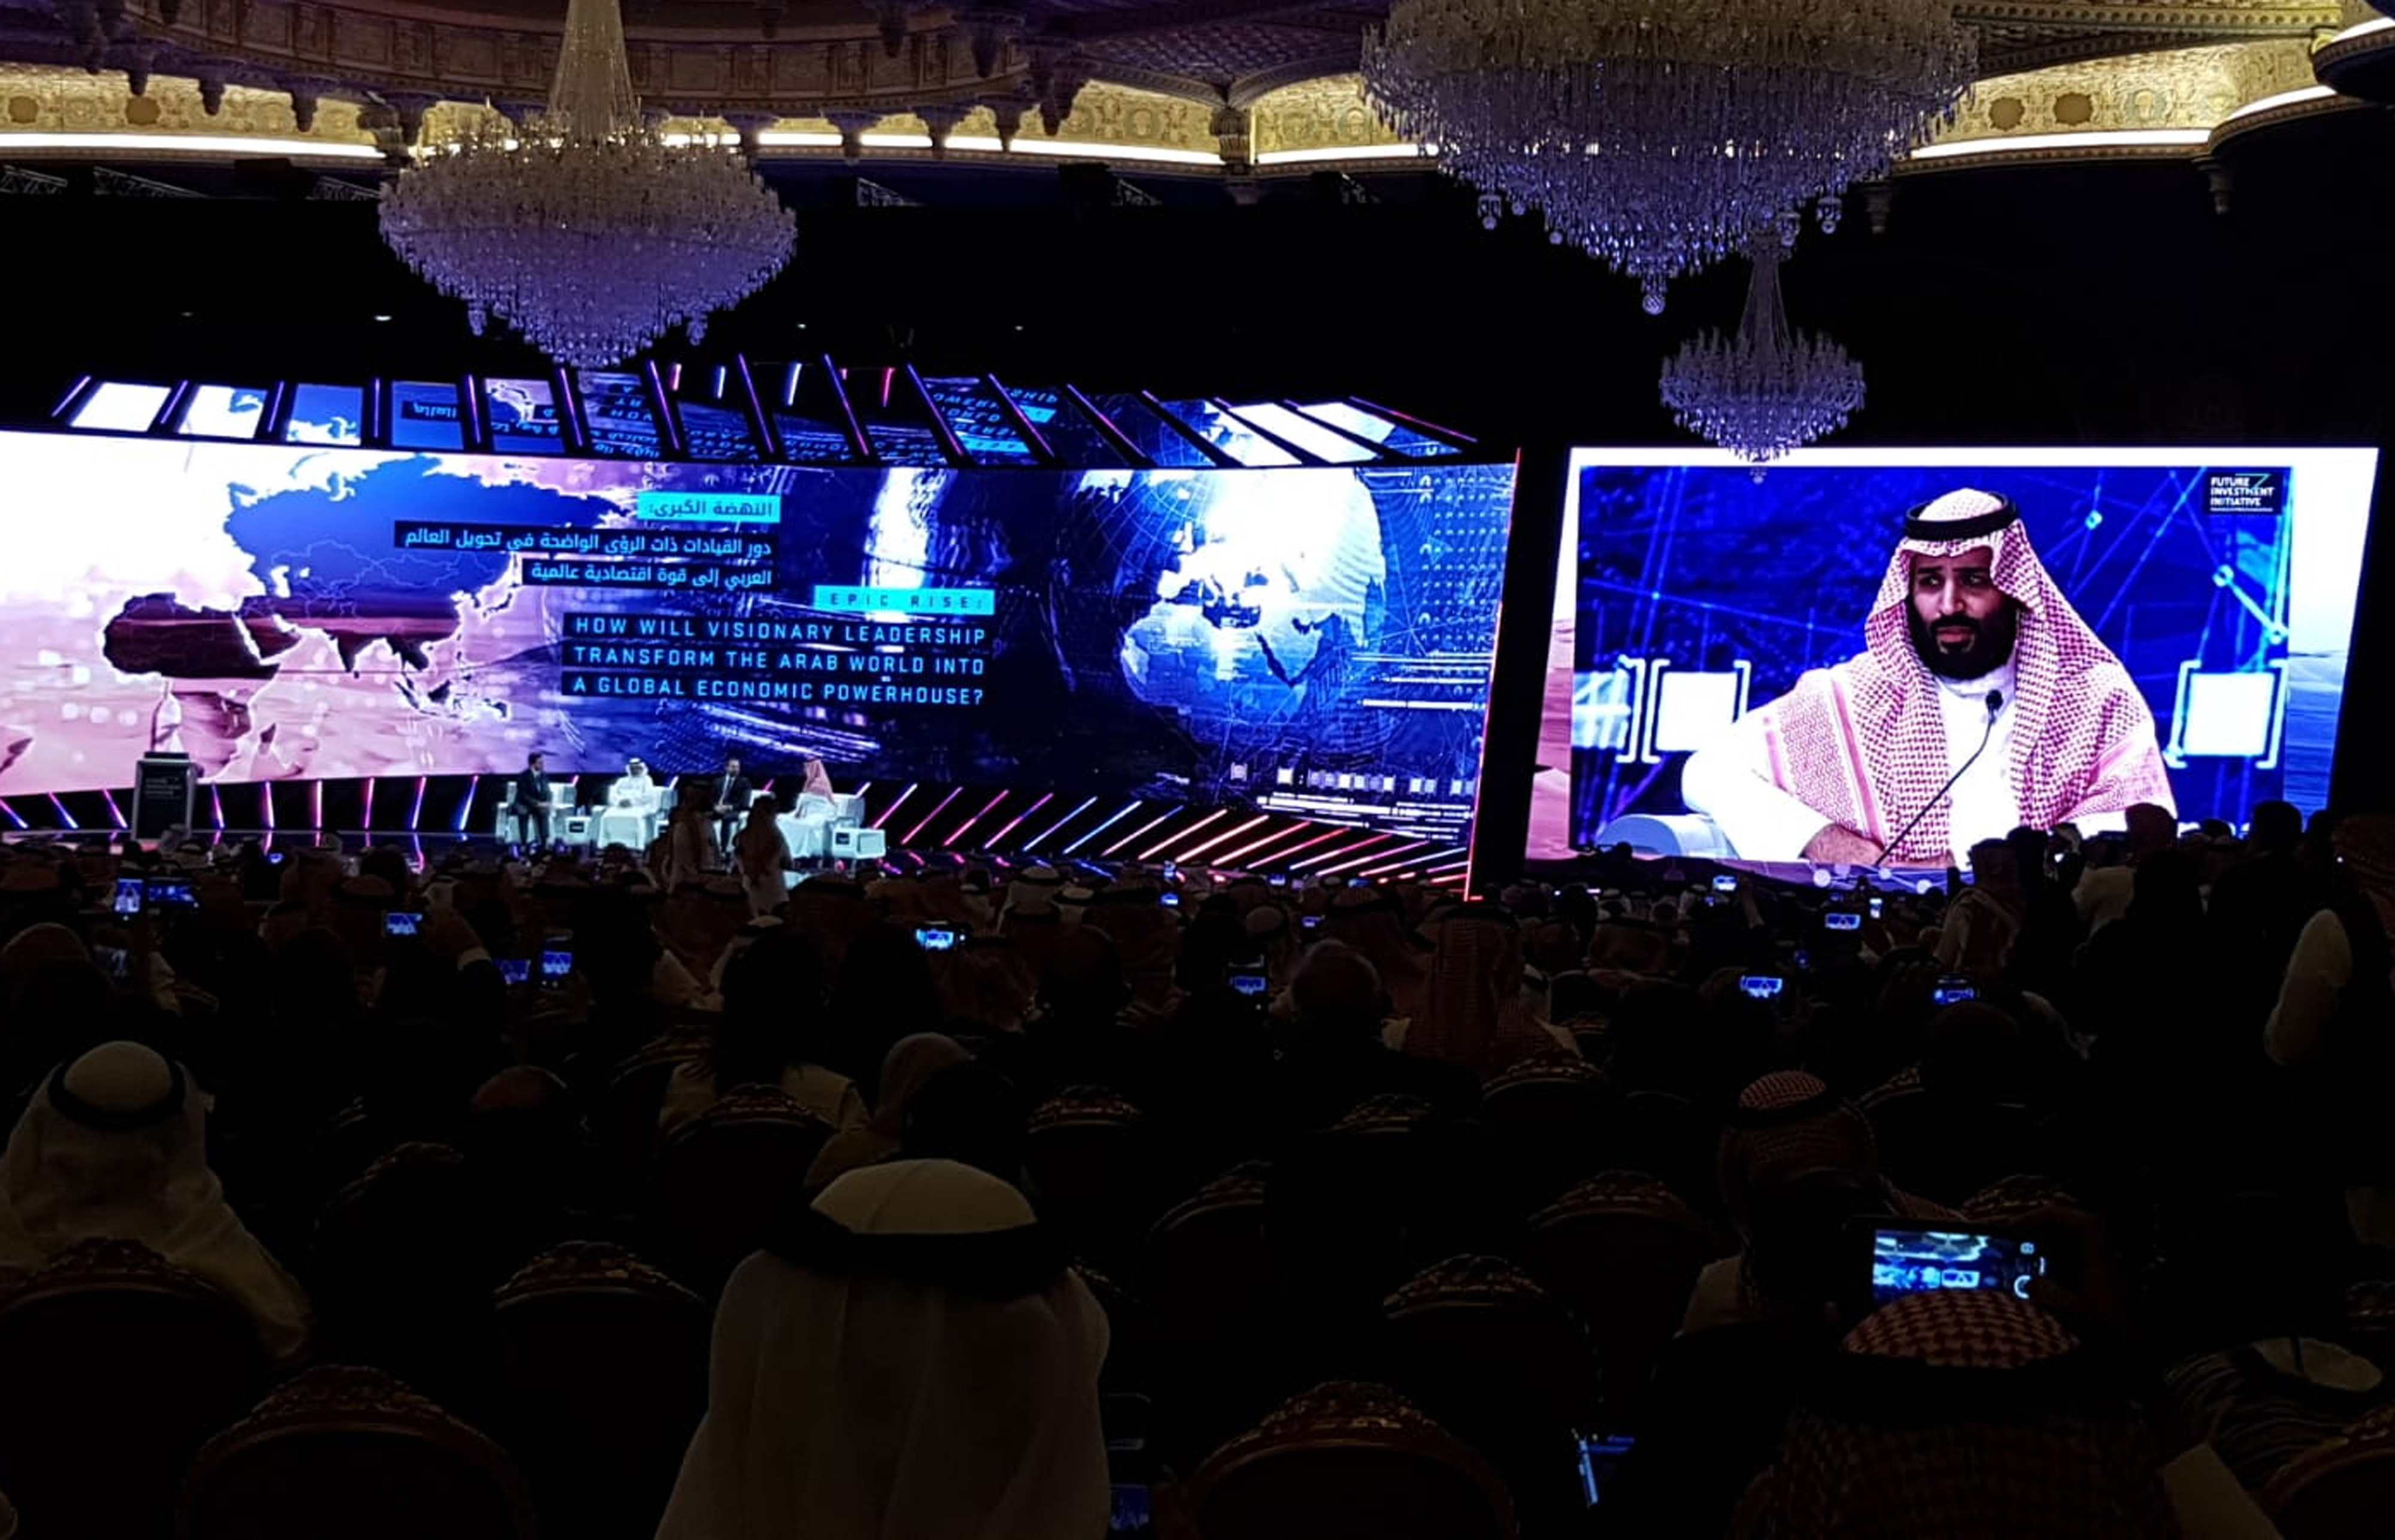 Saudi Crown Prince Mohammed bin Salman is displayed on a screen as he speaks at the Future Investment Initiative conference inside the King Abdulaziz Convention Center in Riyadh, Saudi Arabia, on Oct. 24, 2018. MUST CREDIT: Bloomberg photo by Javier Blas.